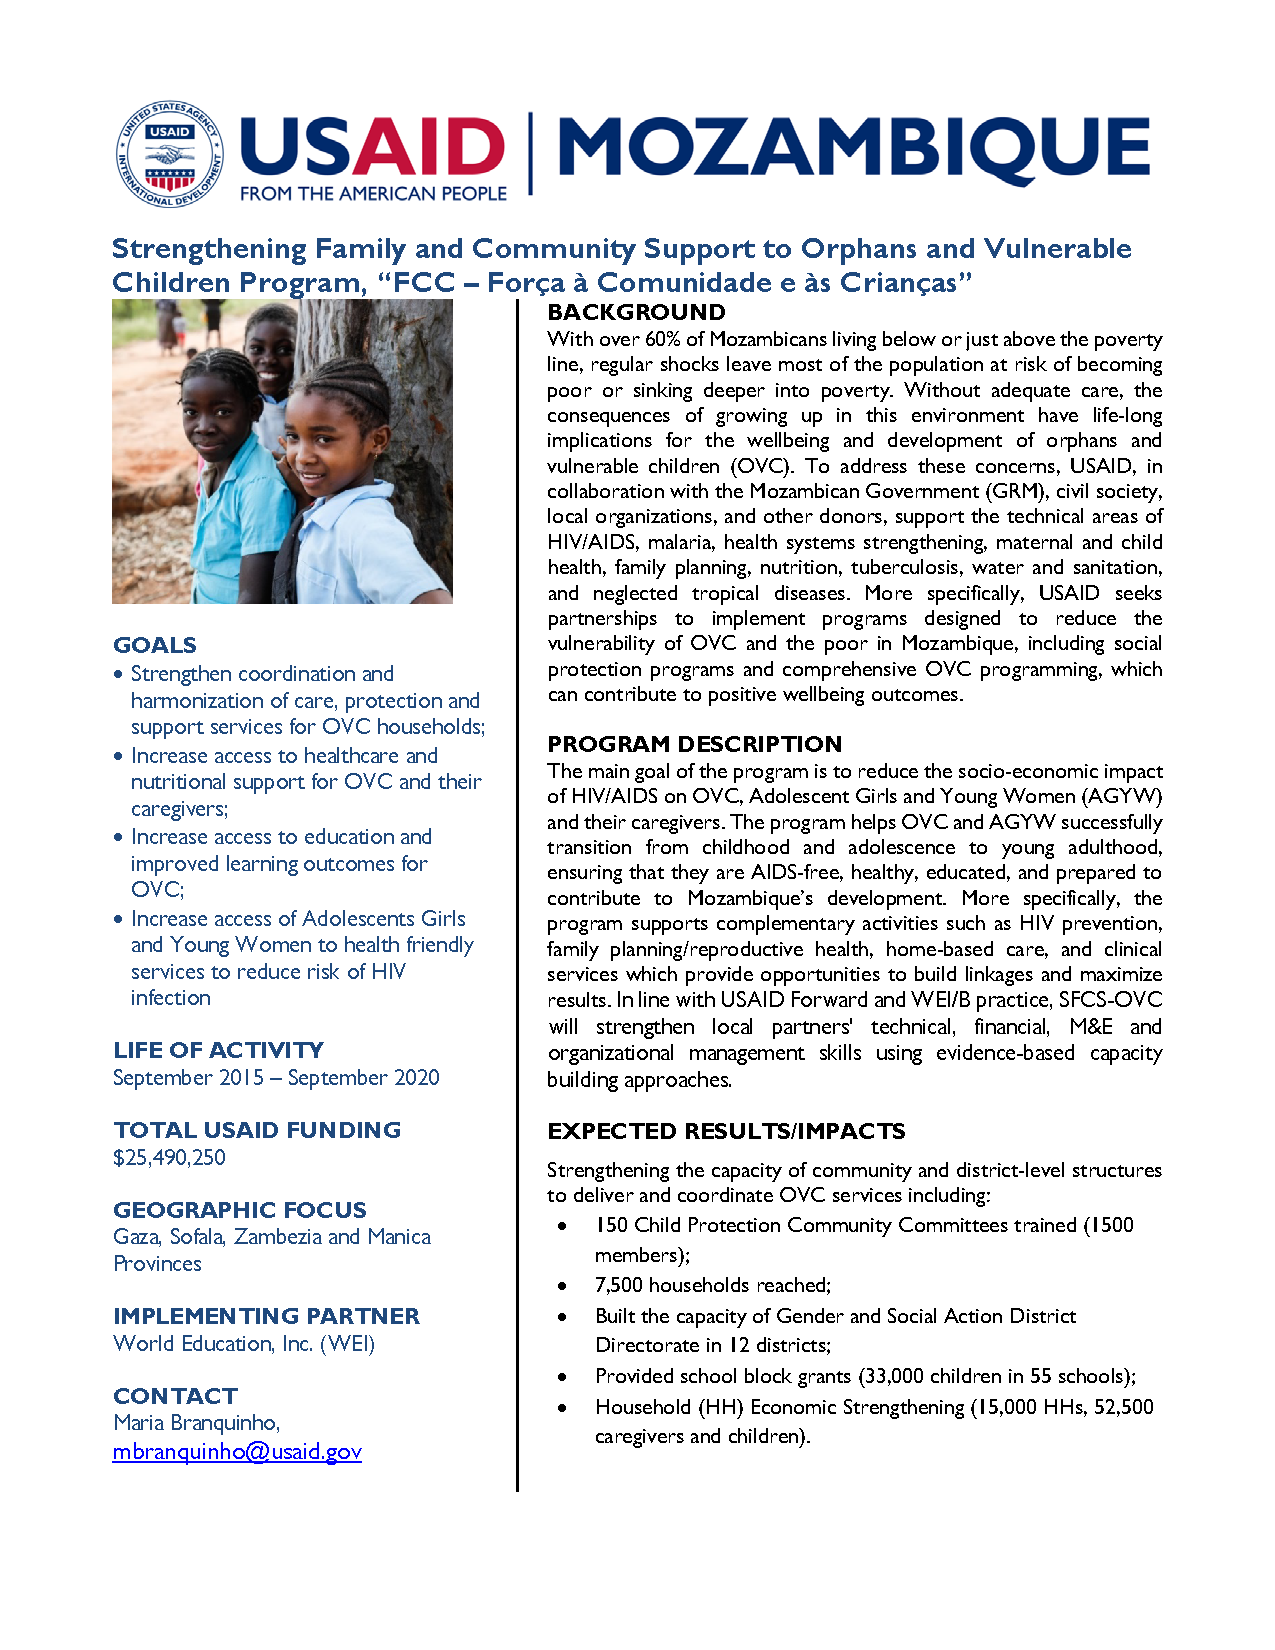 Strengthening Family and Community Support to Orphans and Vulnerable Children Program Fact Sheet